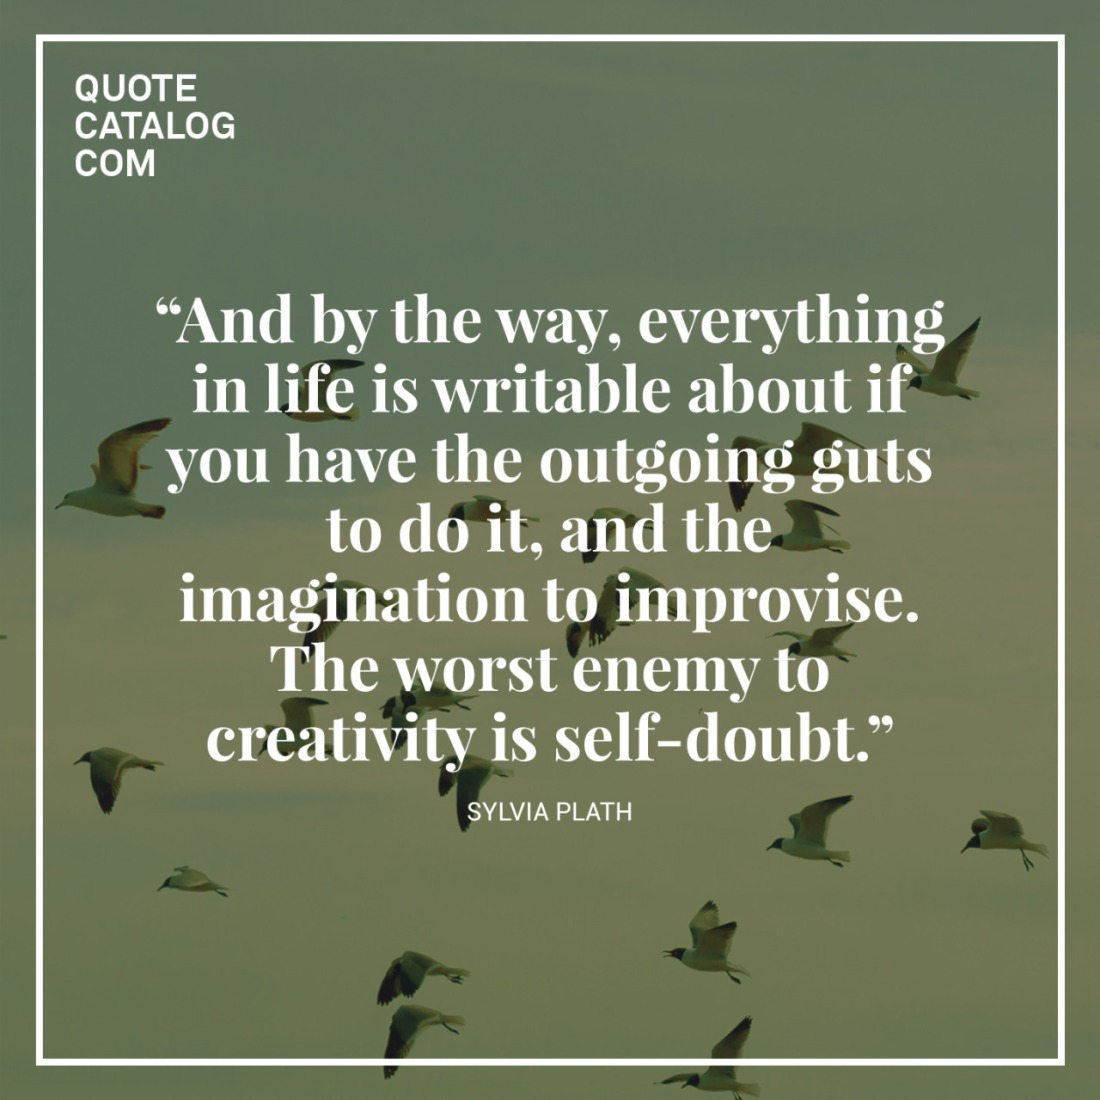 credit: http://quotecatalog.net/post/123512885480/and-by-the-way-everything-in-life-is-writable